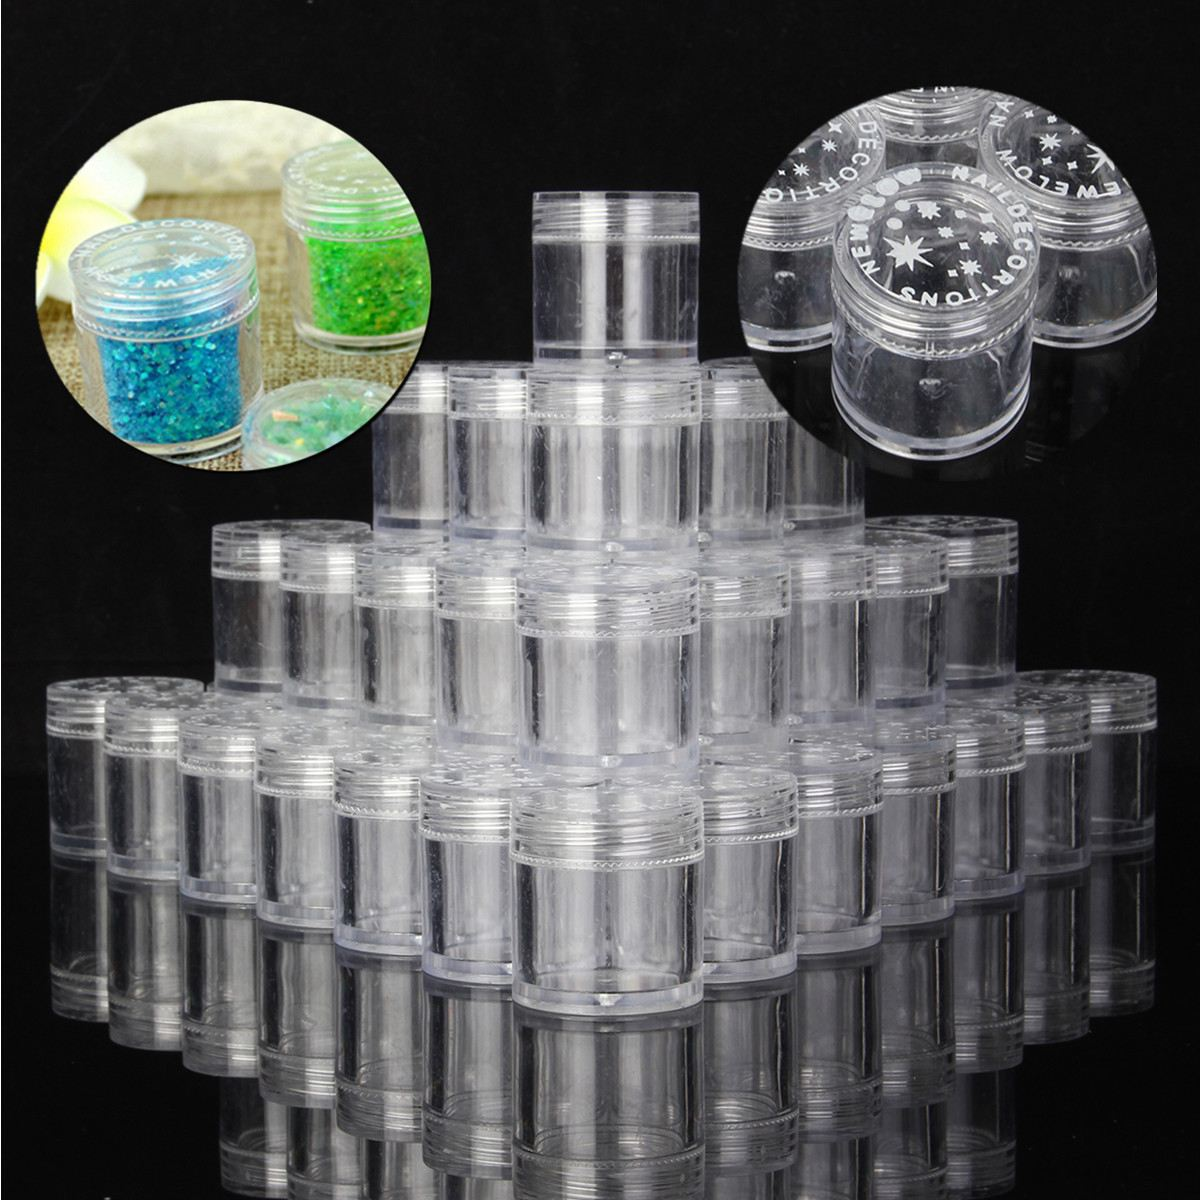 20/50pcs 10g Empty Plastic Makeup Nail Art Bead Storage Container Portable Cosmetic Cream Jar Pot Box Round Bottle Transparent